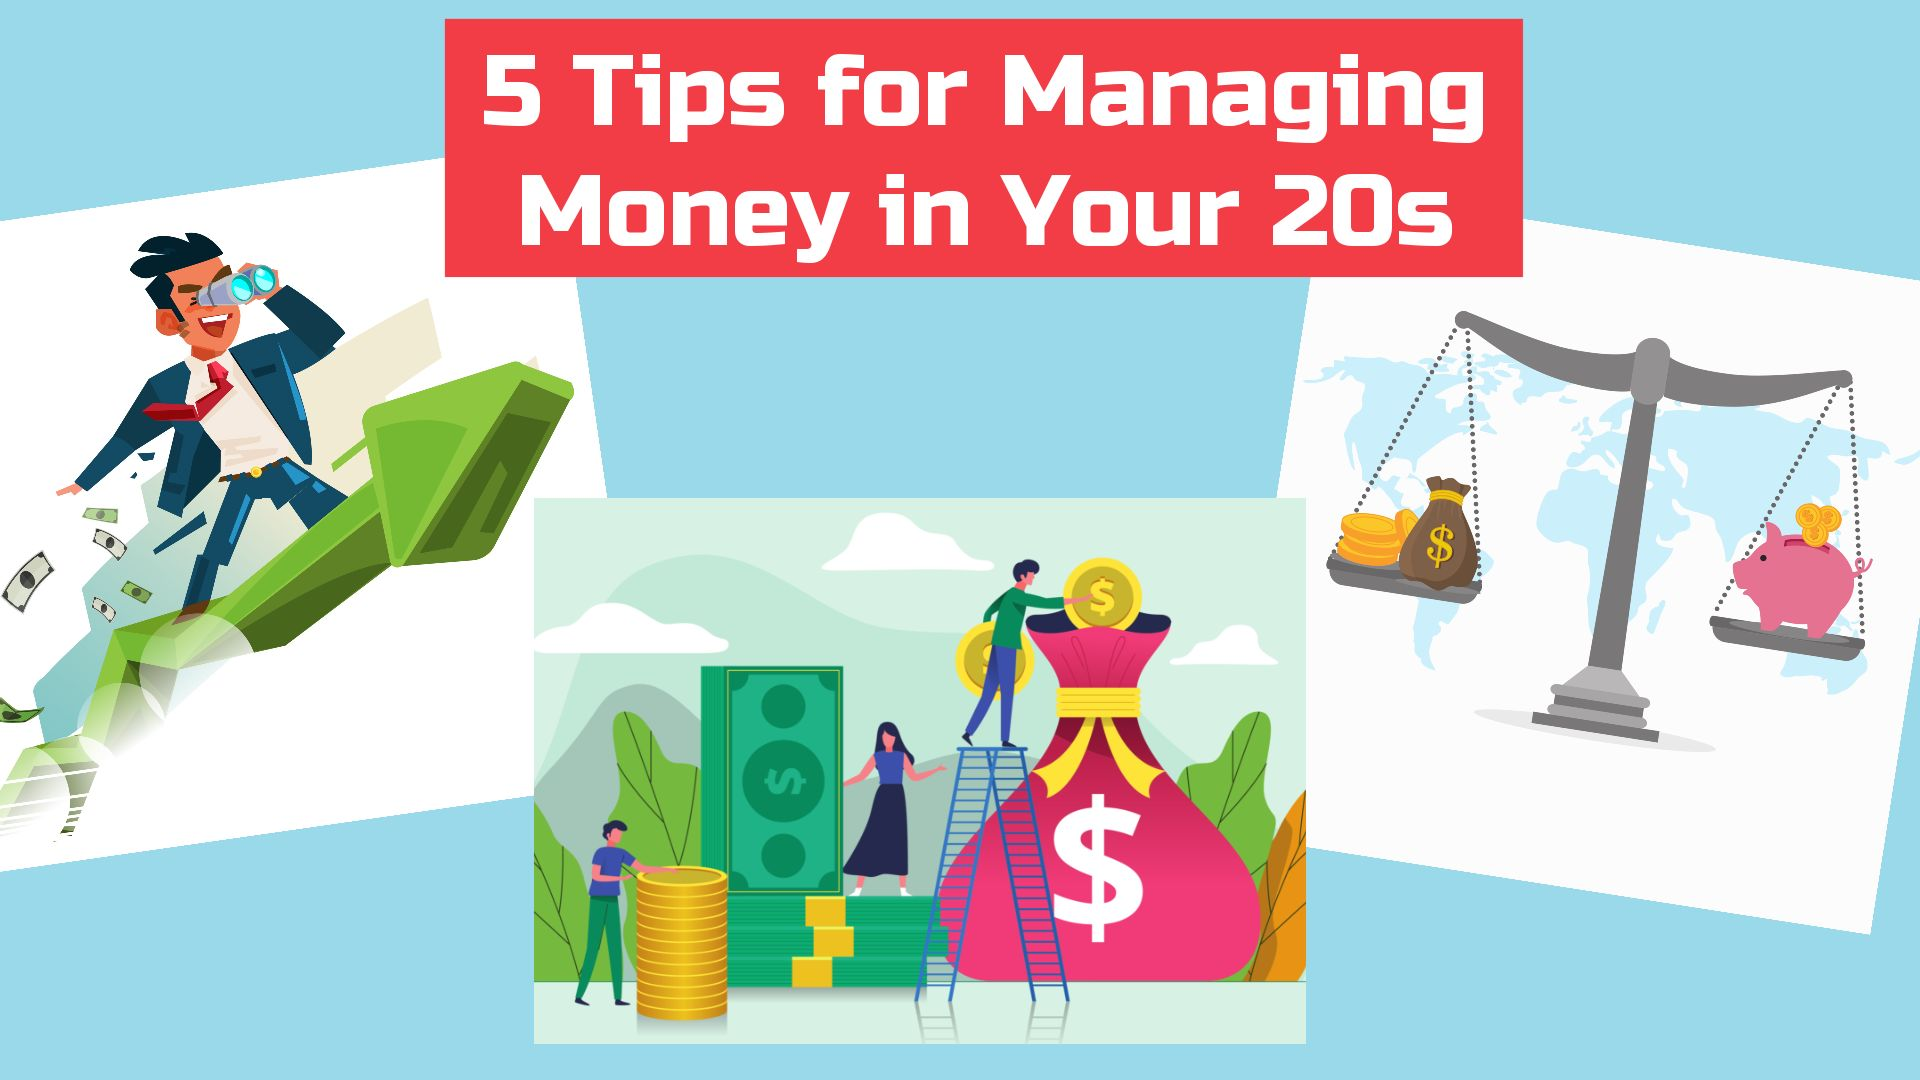 5 Tips for Managing Money in Your 20s